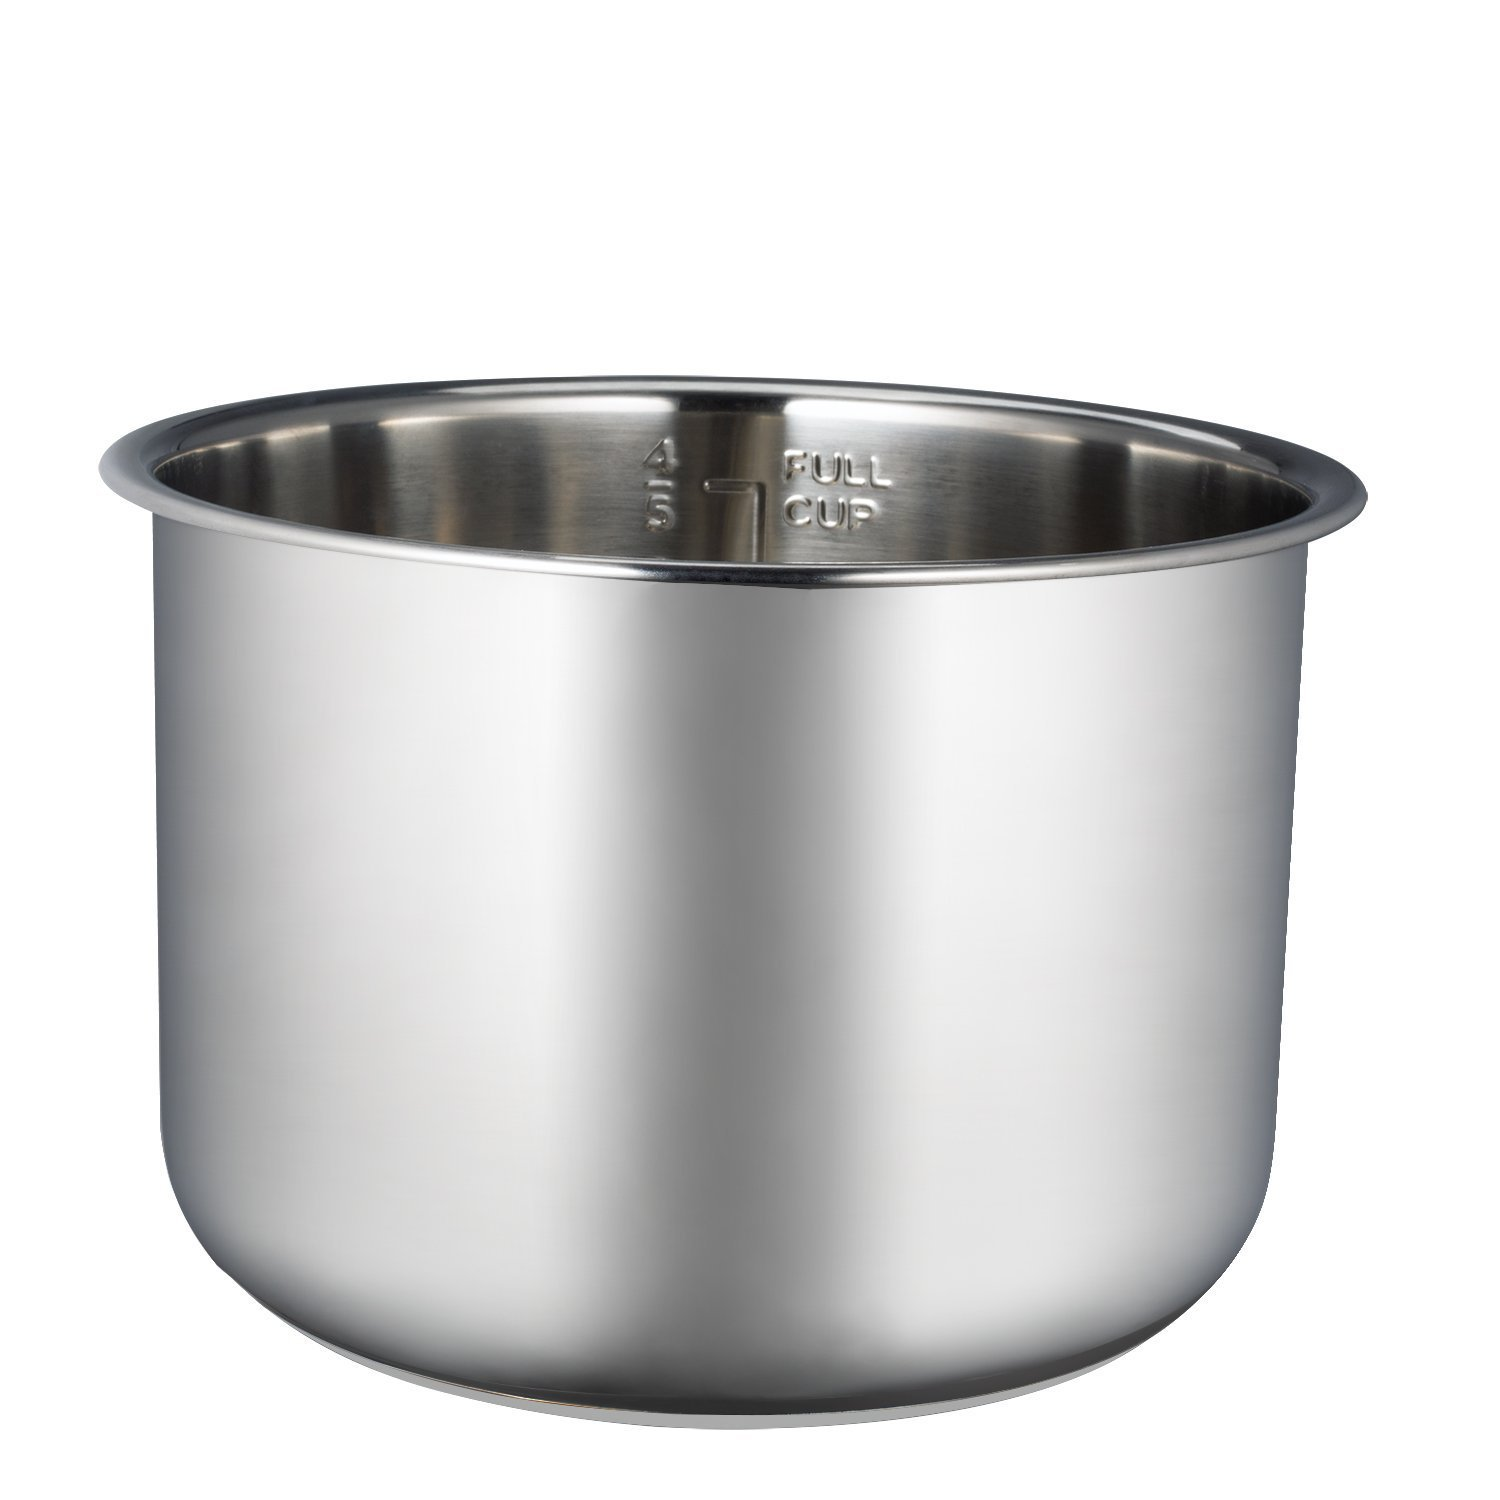 COSORI Stainless Steel Inner Pot for 2 Quart Mini Pressure Cooker